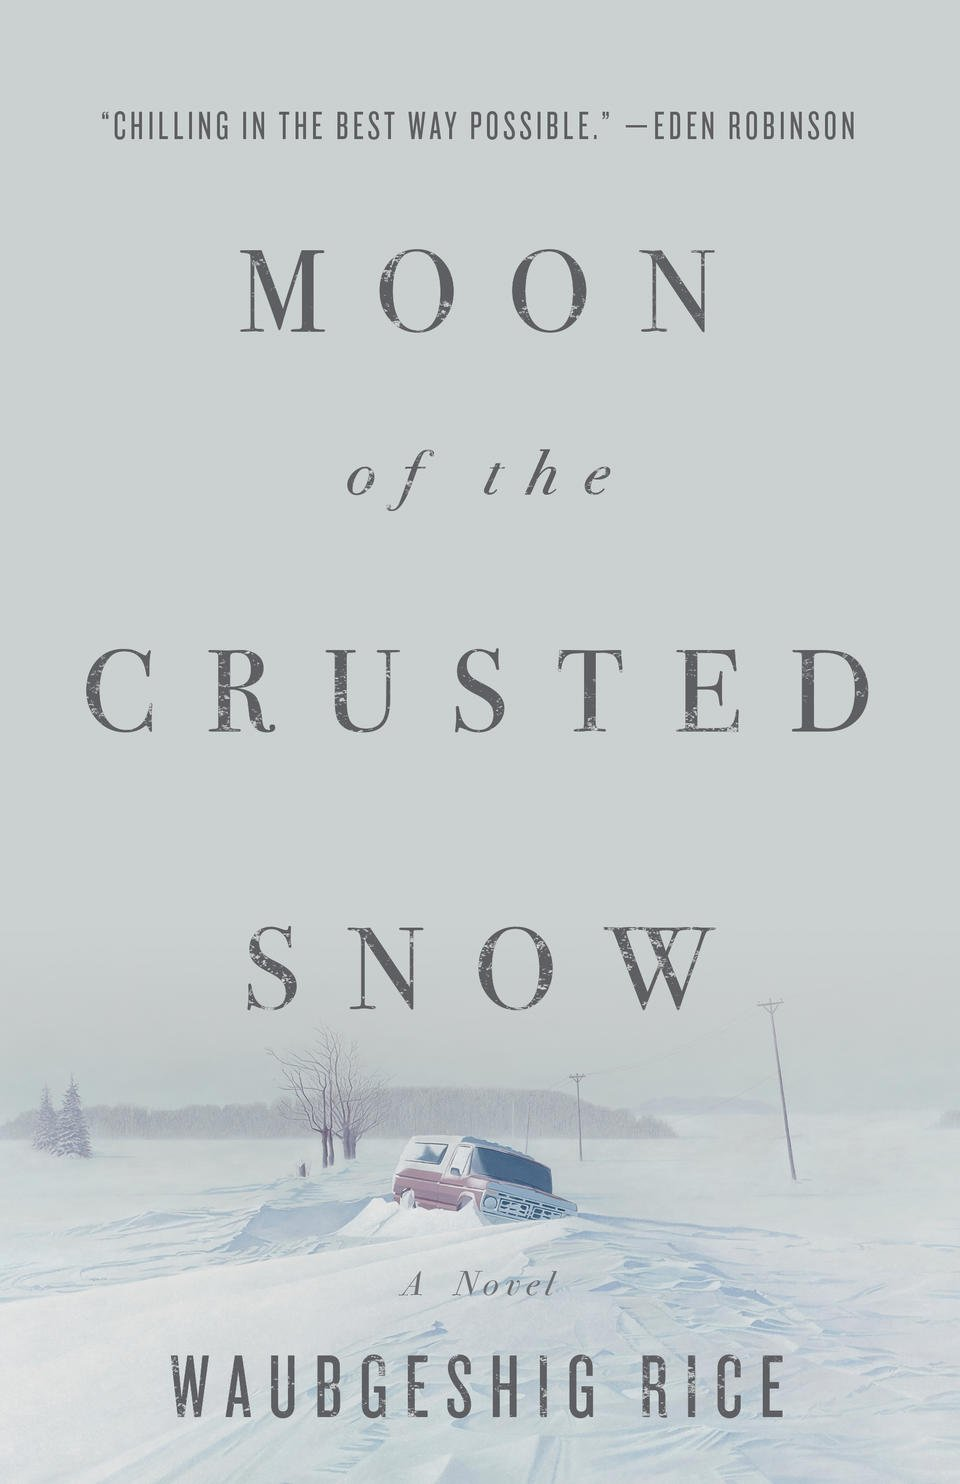 Cover of Waubegish Rice's MOON OF THE CRUSTED SNOW